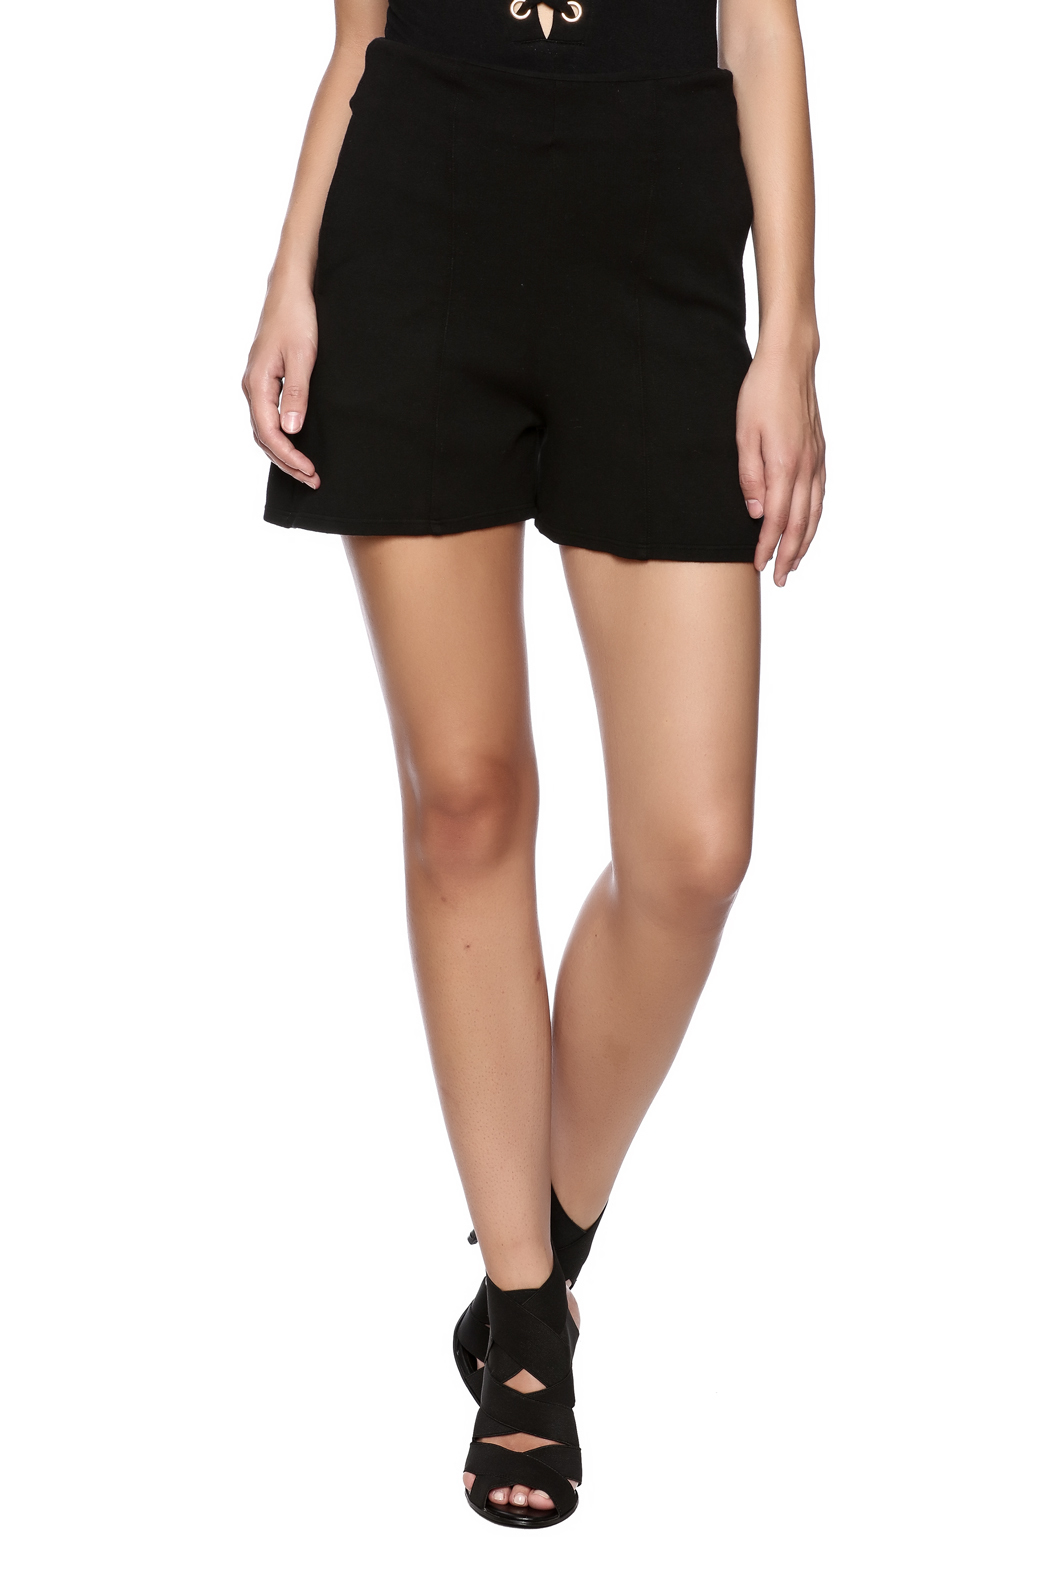 Groceries Apparel Black High Waisted Short - Main Image